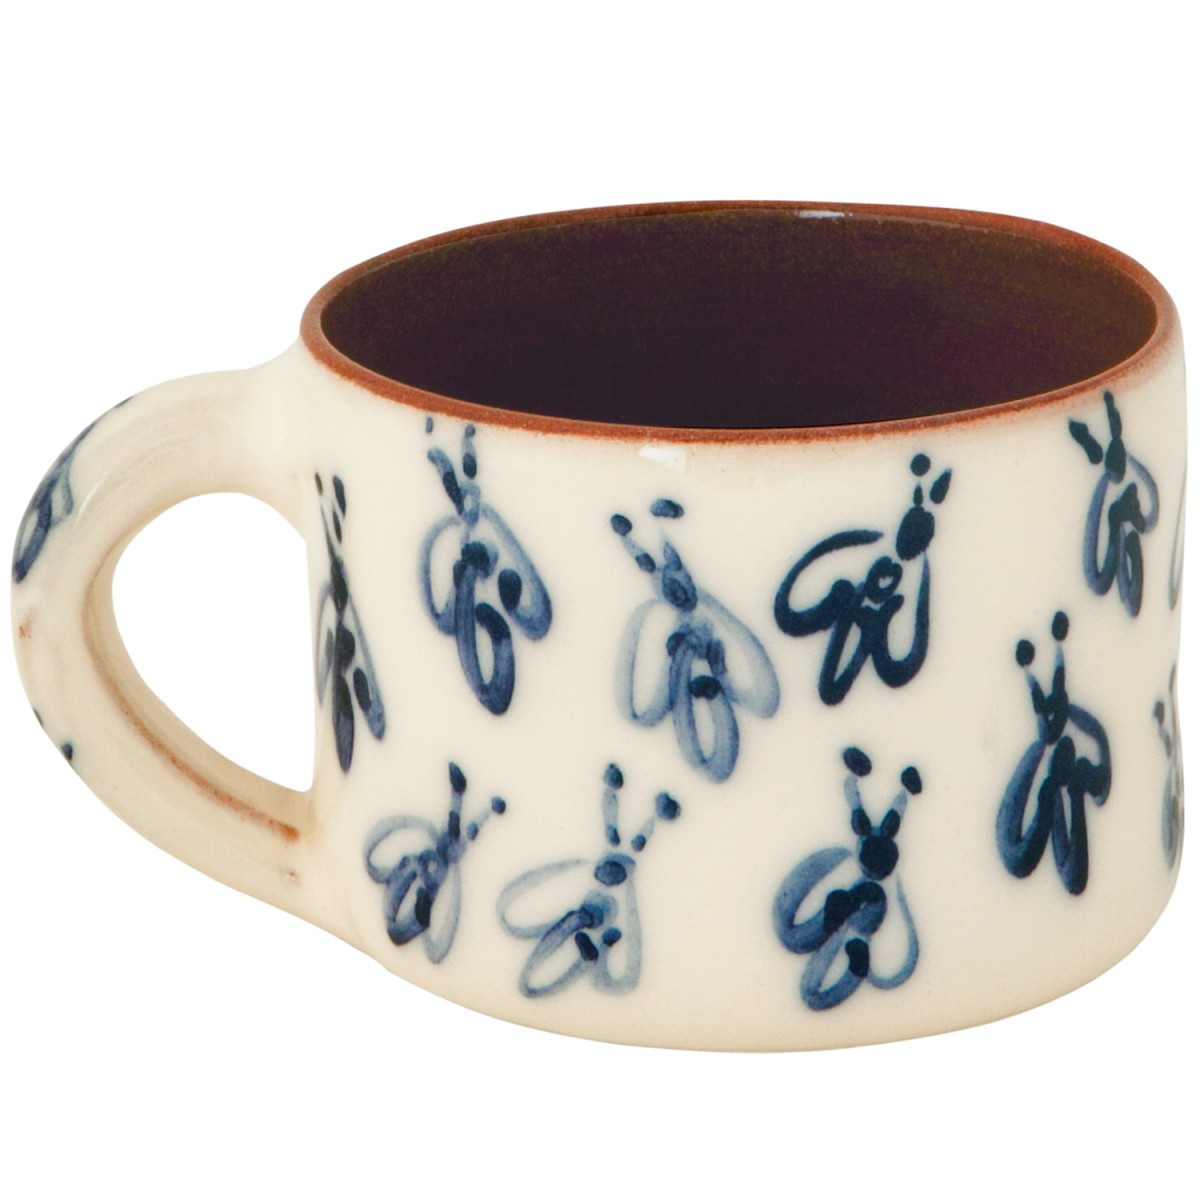 Pottery Mugs for Sale - Bees II -1